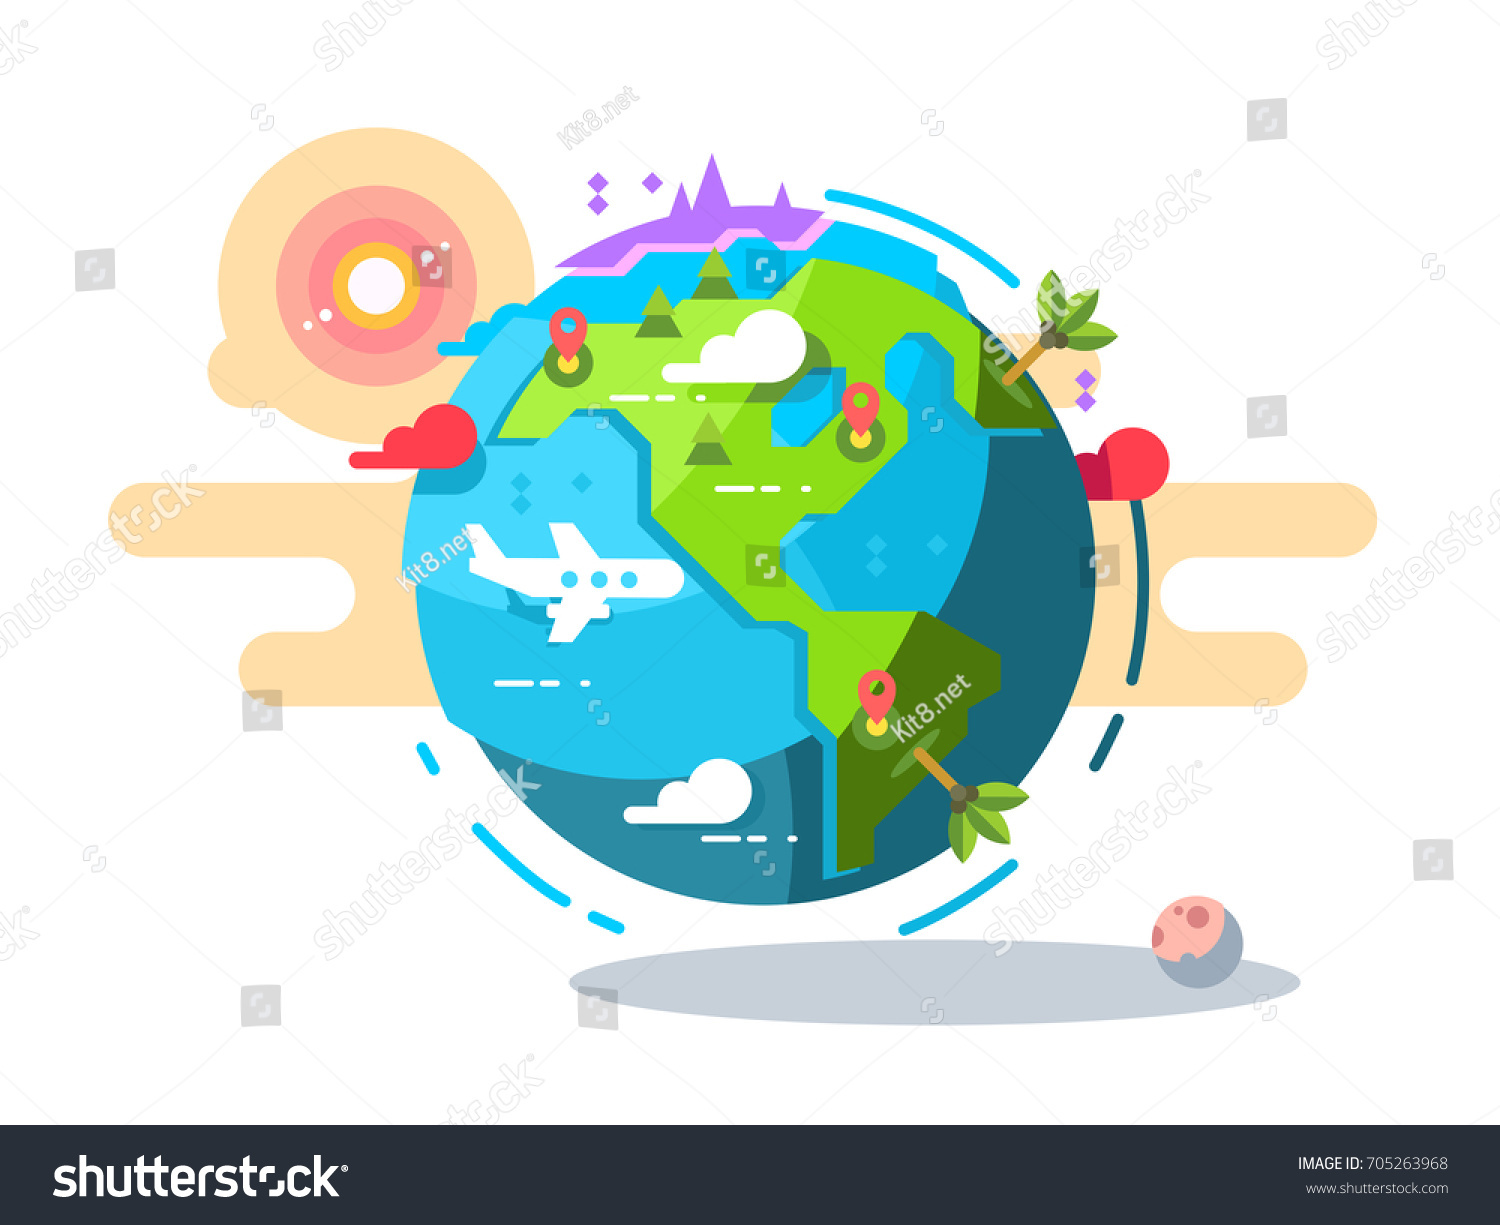 Plane flying around world geometric style vectores en stock plane flying around the world geometric style travel airplane globe green earth global trip gumiabroncs Choice Image